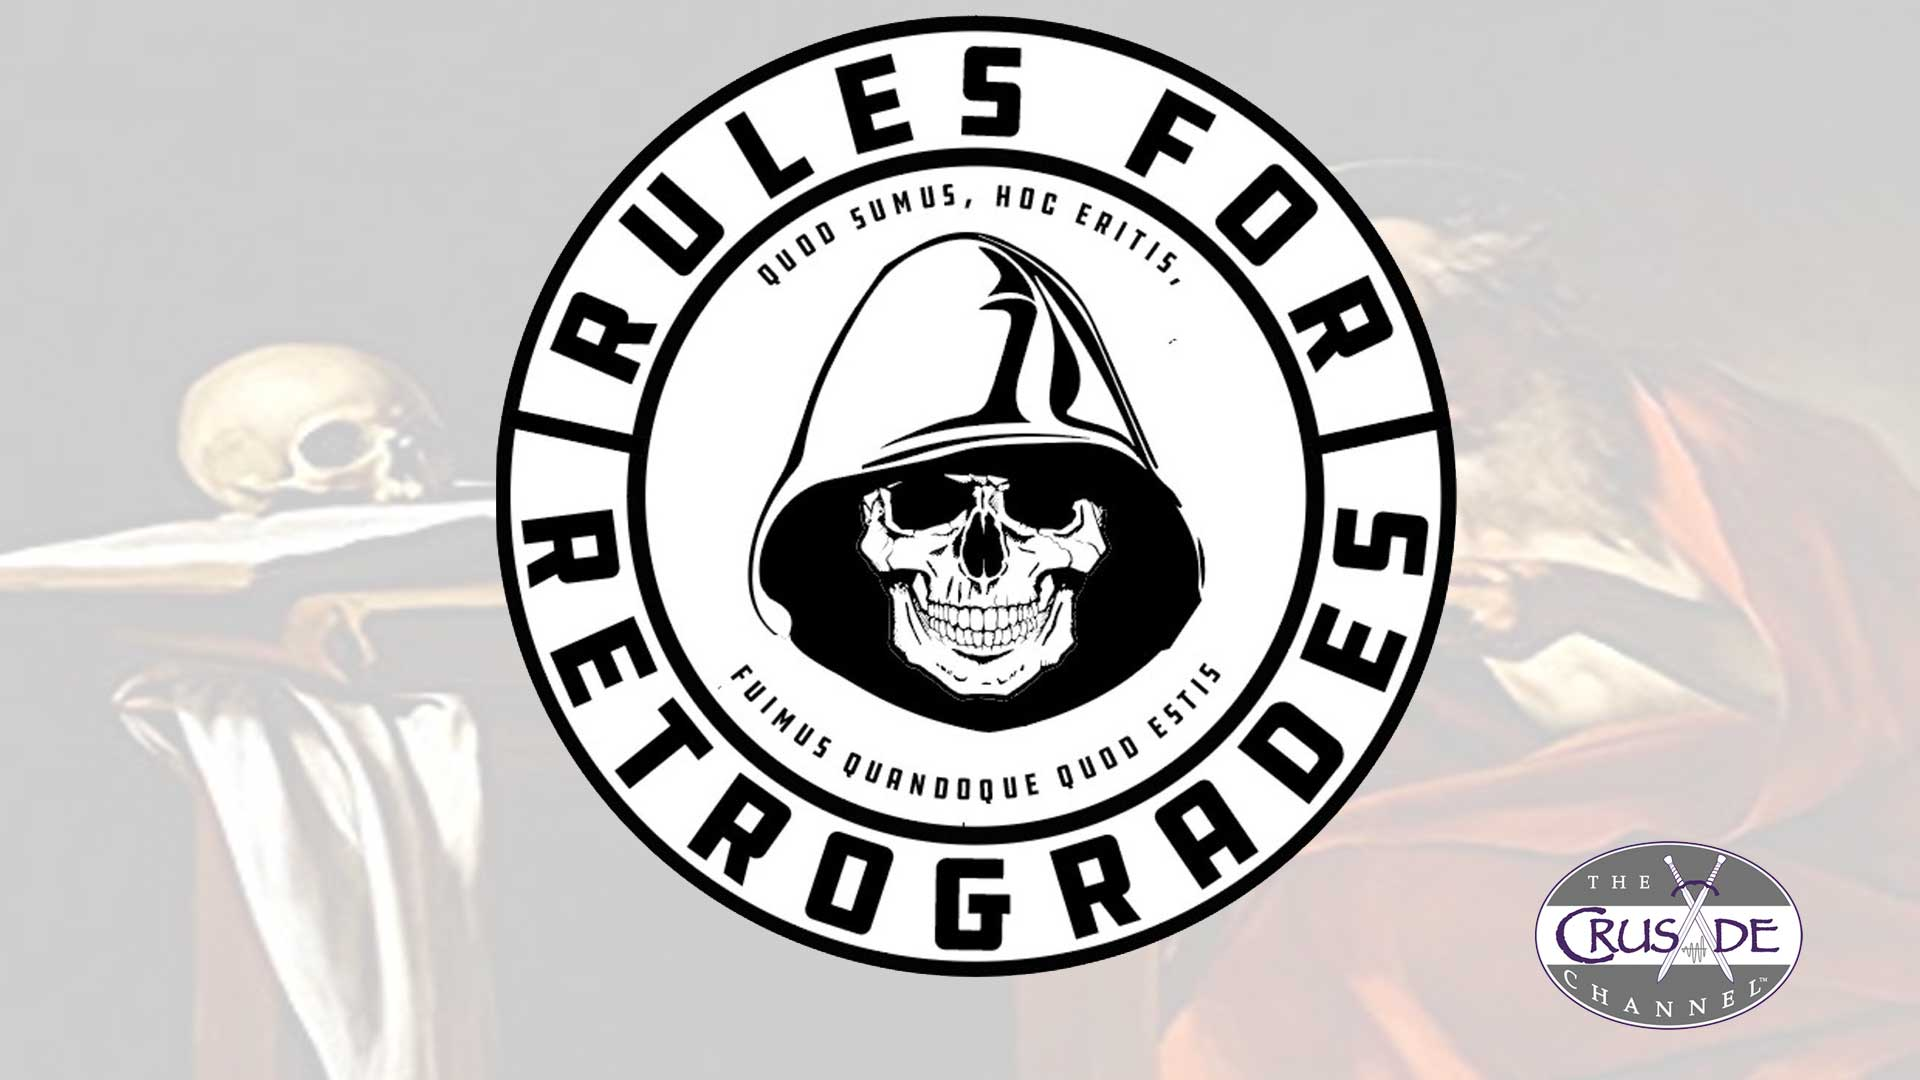 Rules For Retrogrades Joins The CRUSADE Channel!